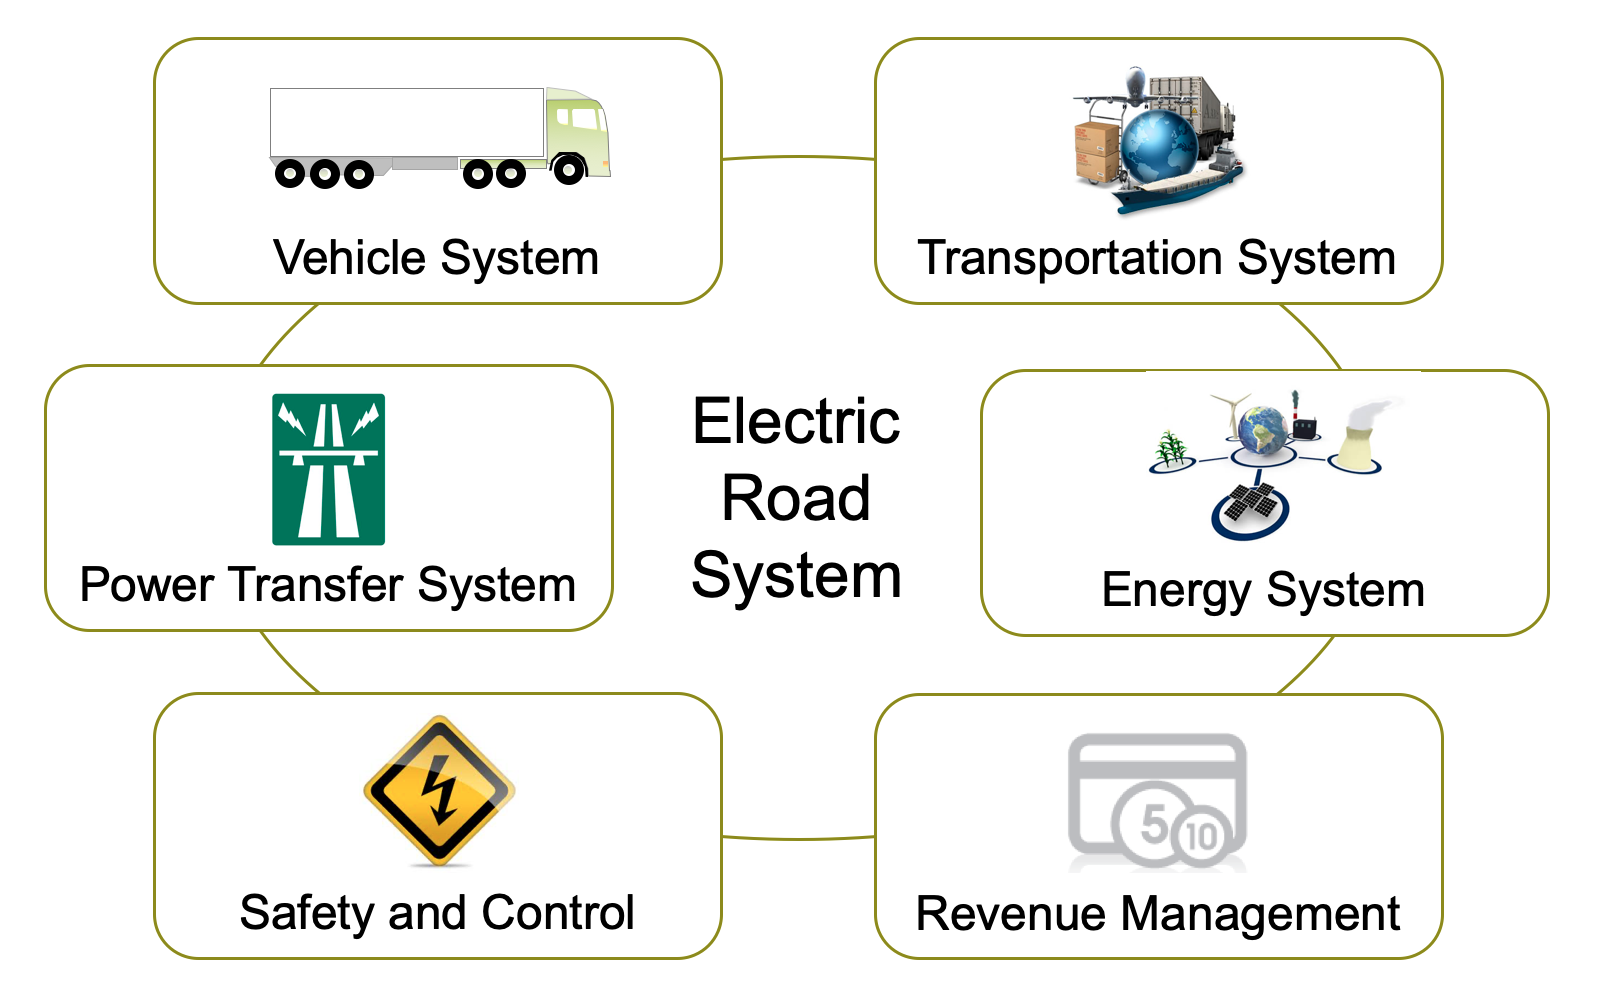 Electric road system with power transfer, vehicles, logistics, energy system, revenue management, safety and control.